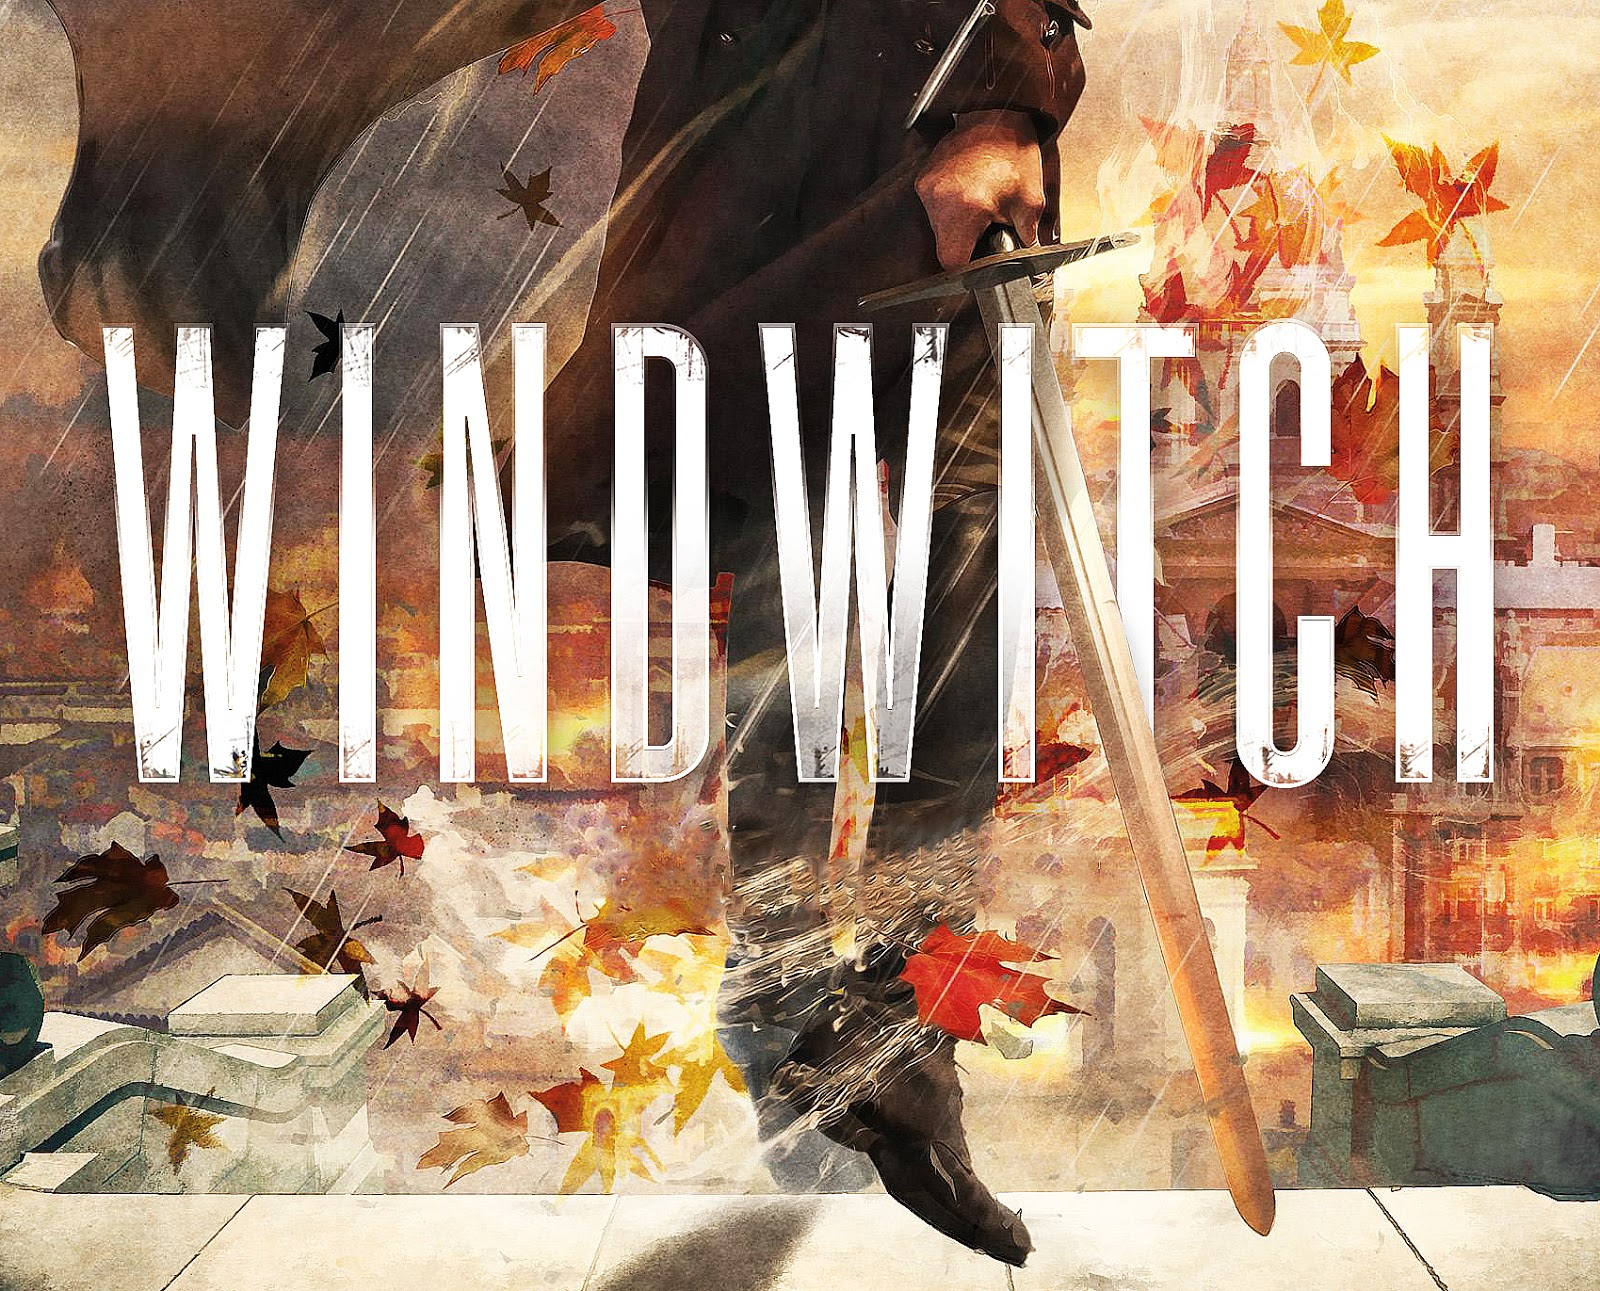 Windwitch Susan Dennard